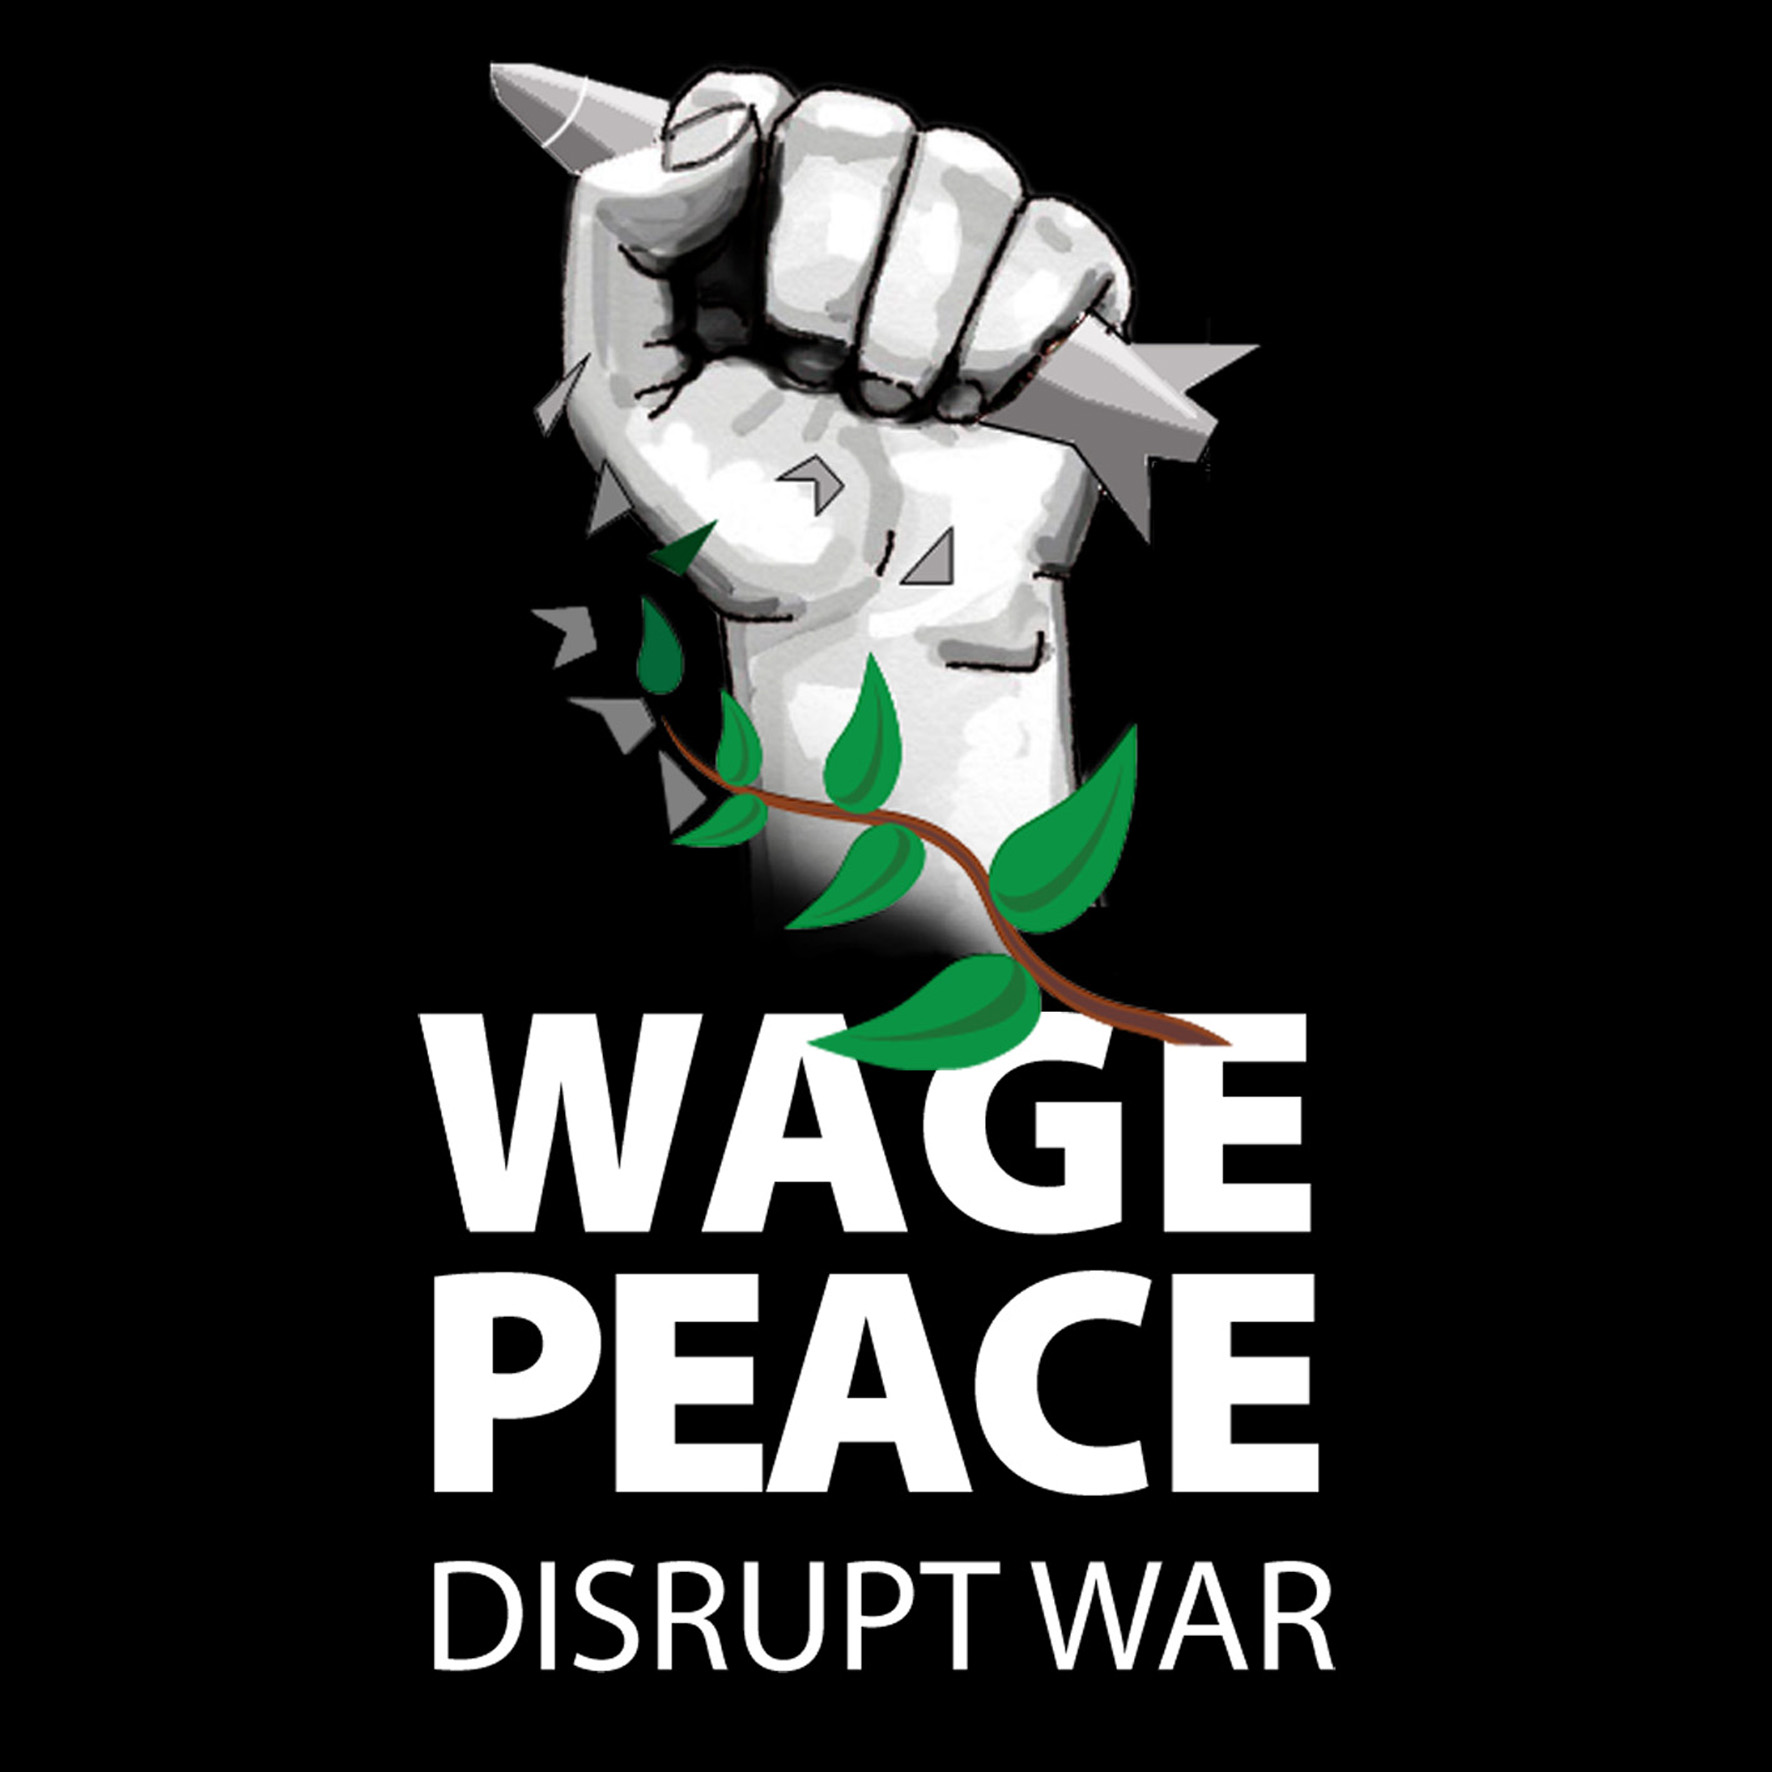 Wage Peace Logo - power symbol - clenched fist crushing bomb turning into peace olive branch